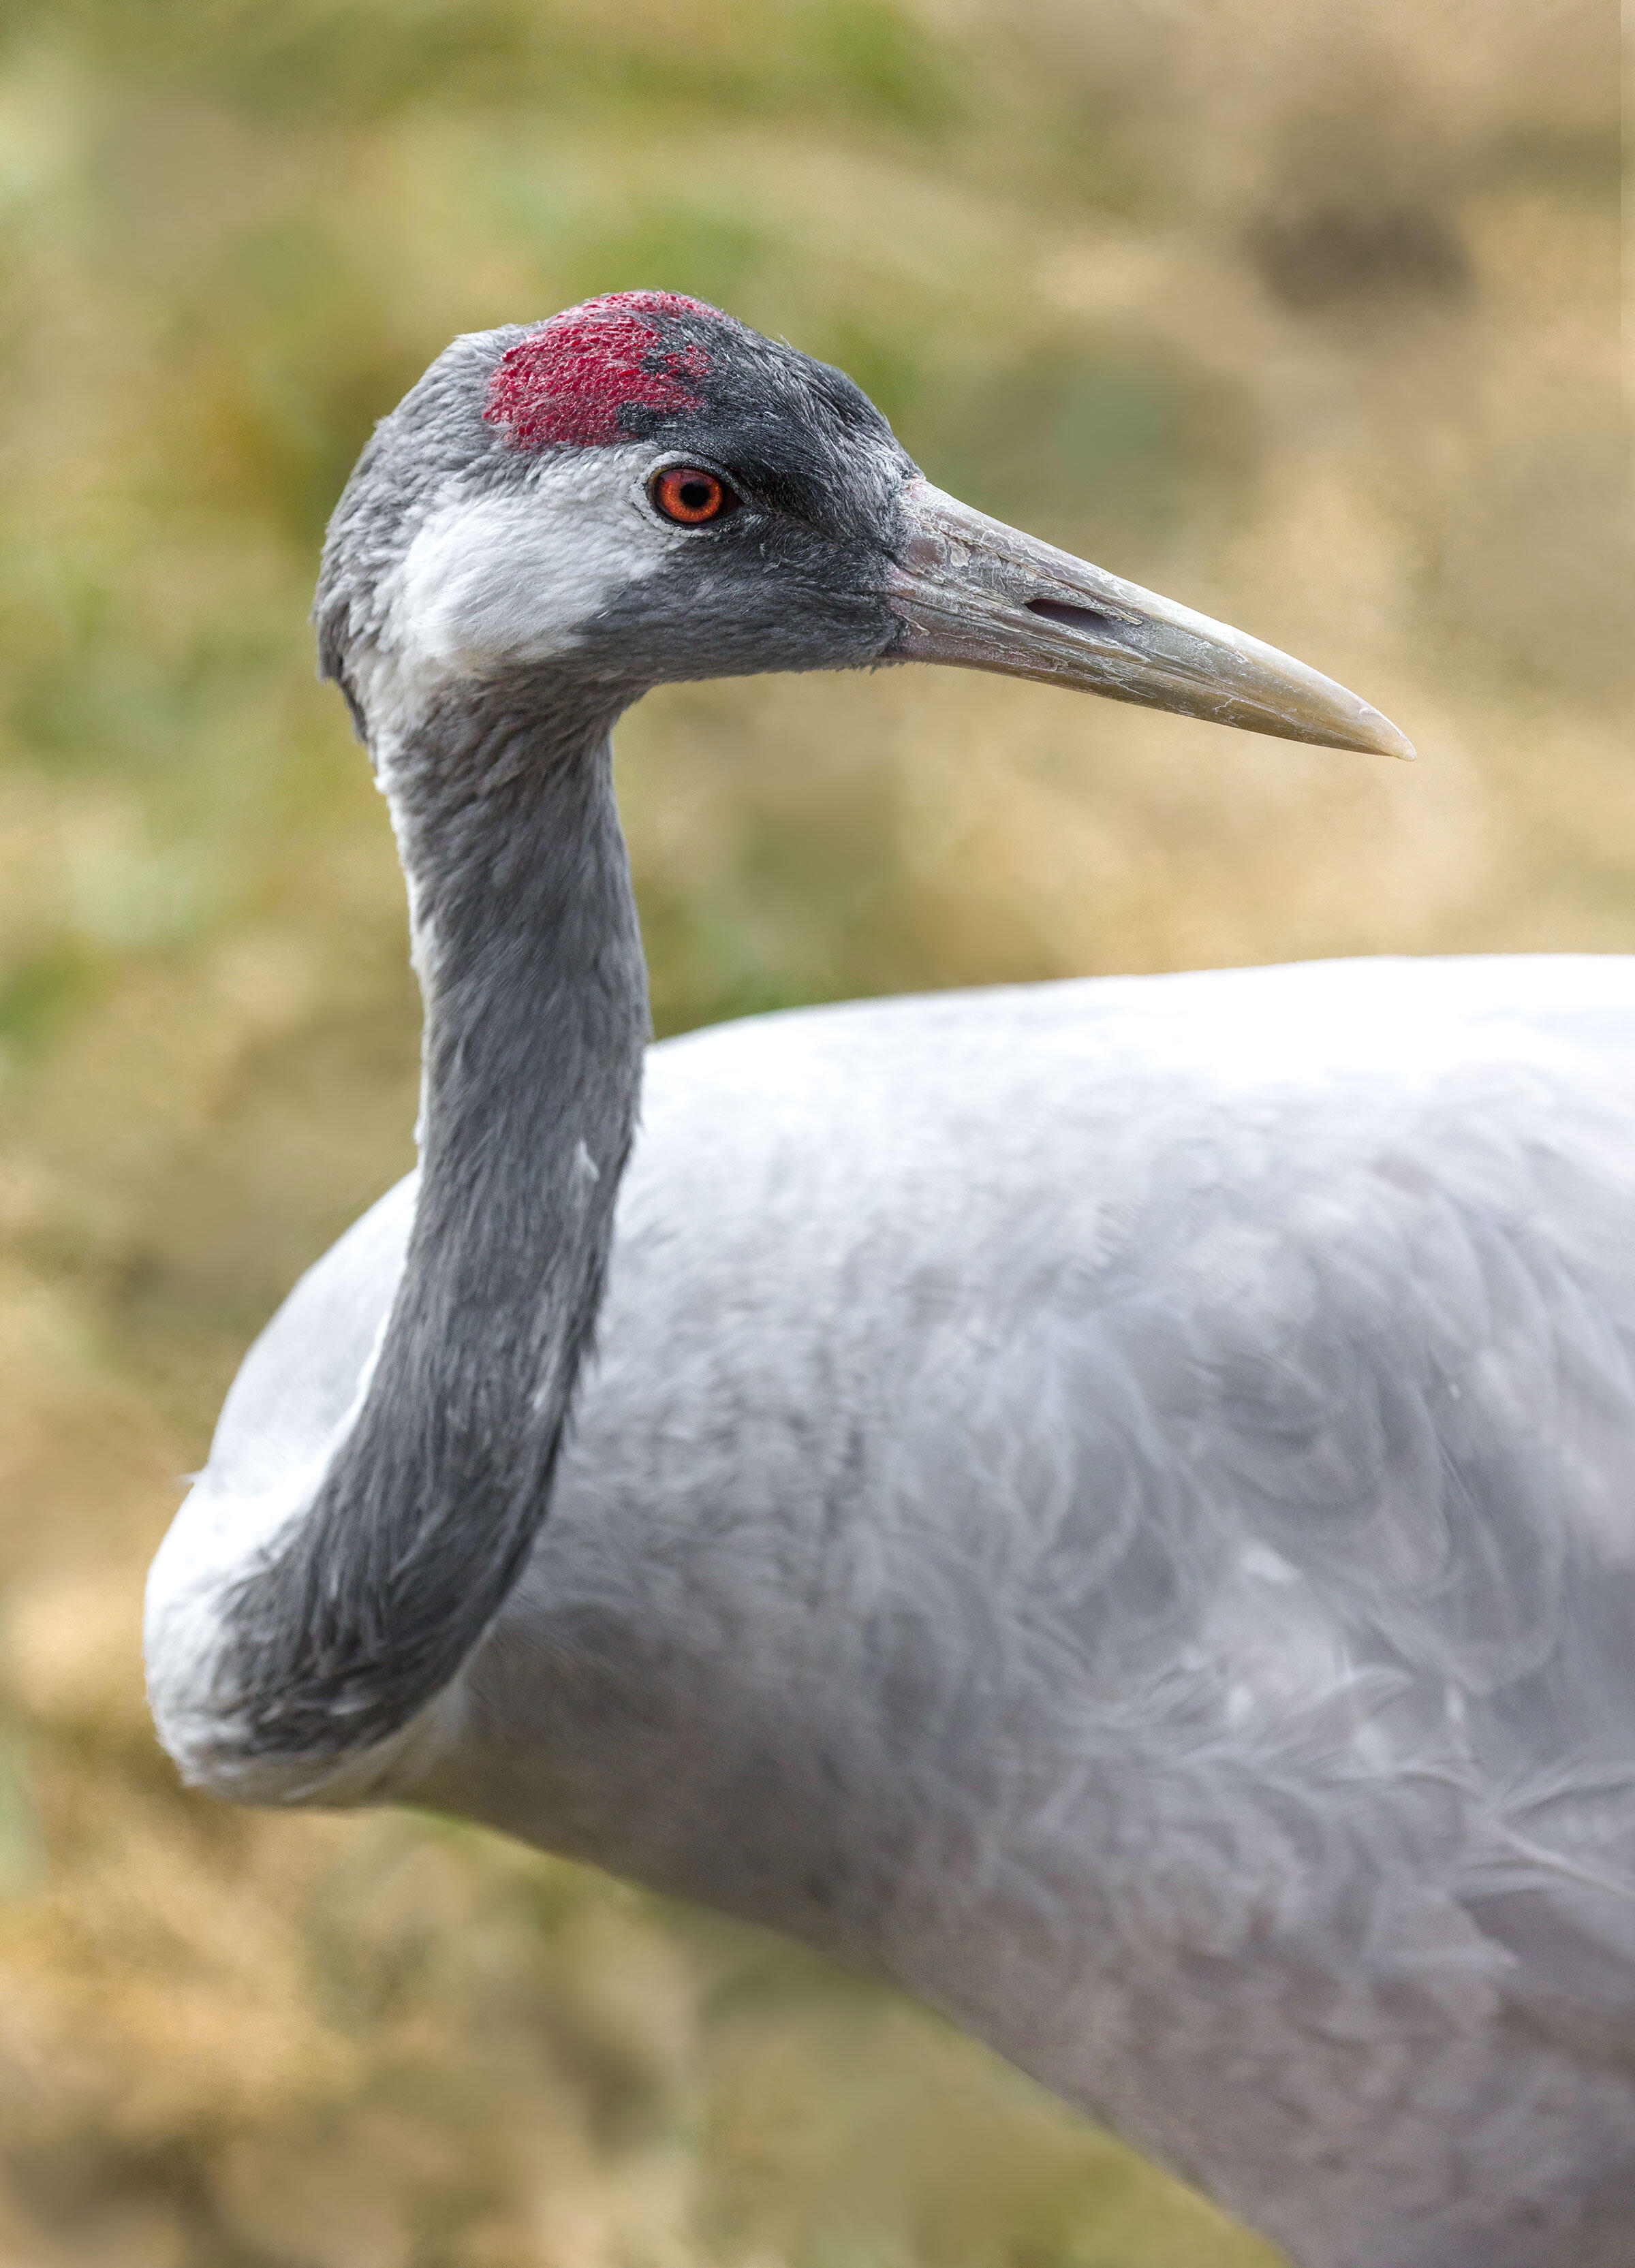 The Common Crane, also known as the Eurasian Crane, lives in more than 80 countries; it breeds throughout northern Europe and Asia and winters in northern Africa. Ted Thousand